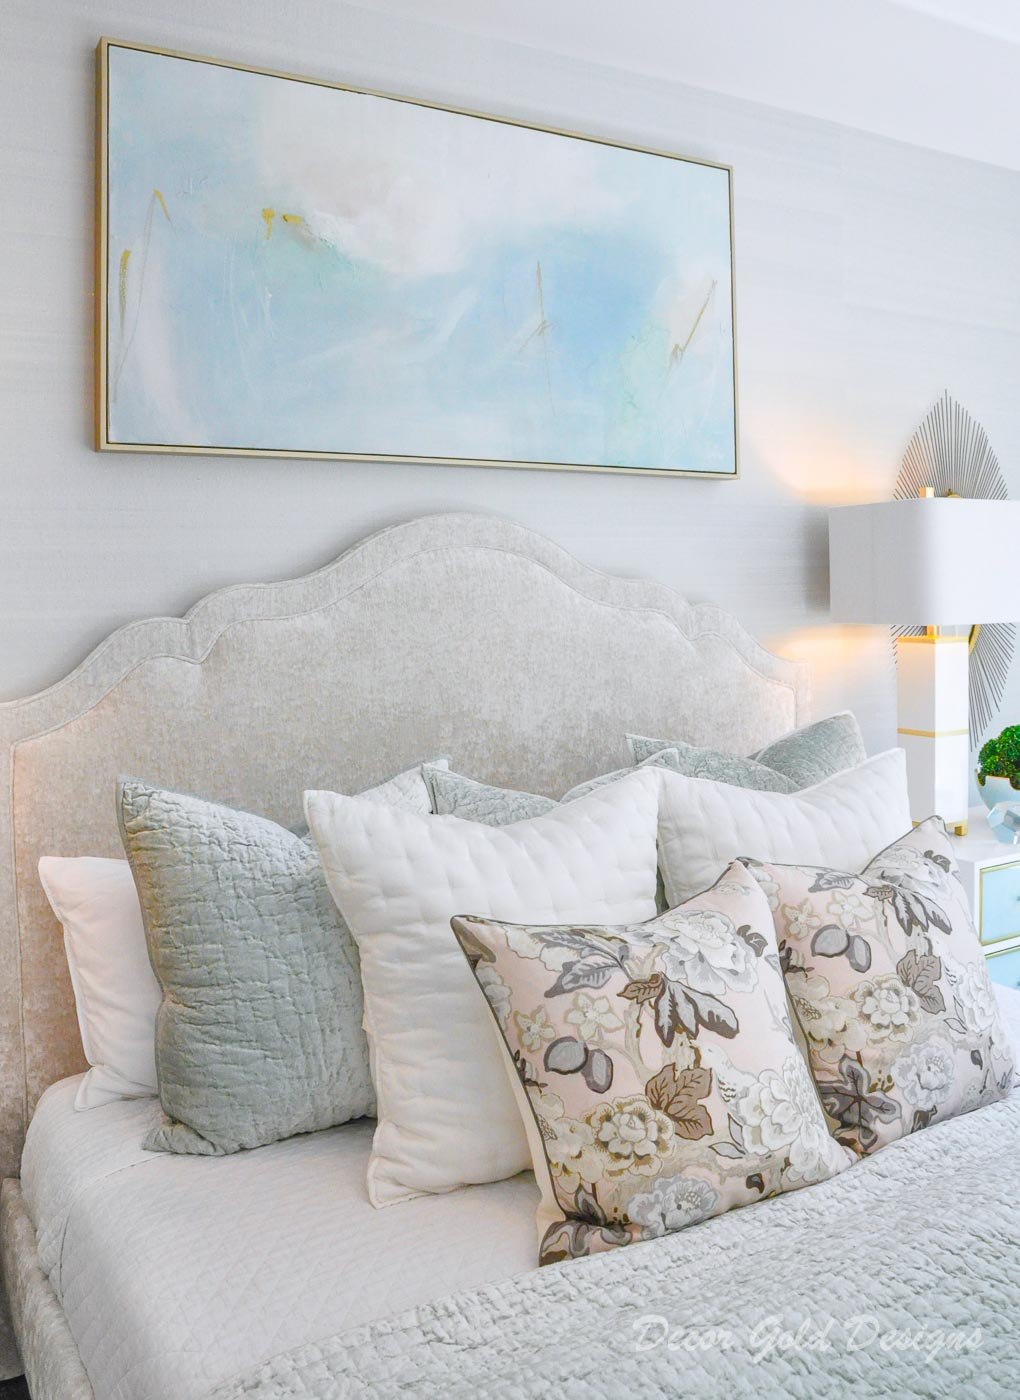 Southern glam master bedroom reveal gorgeous abstract pastel art